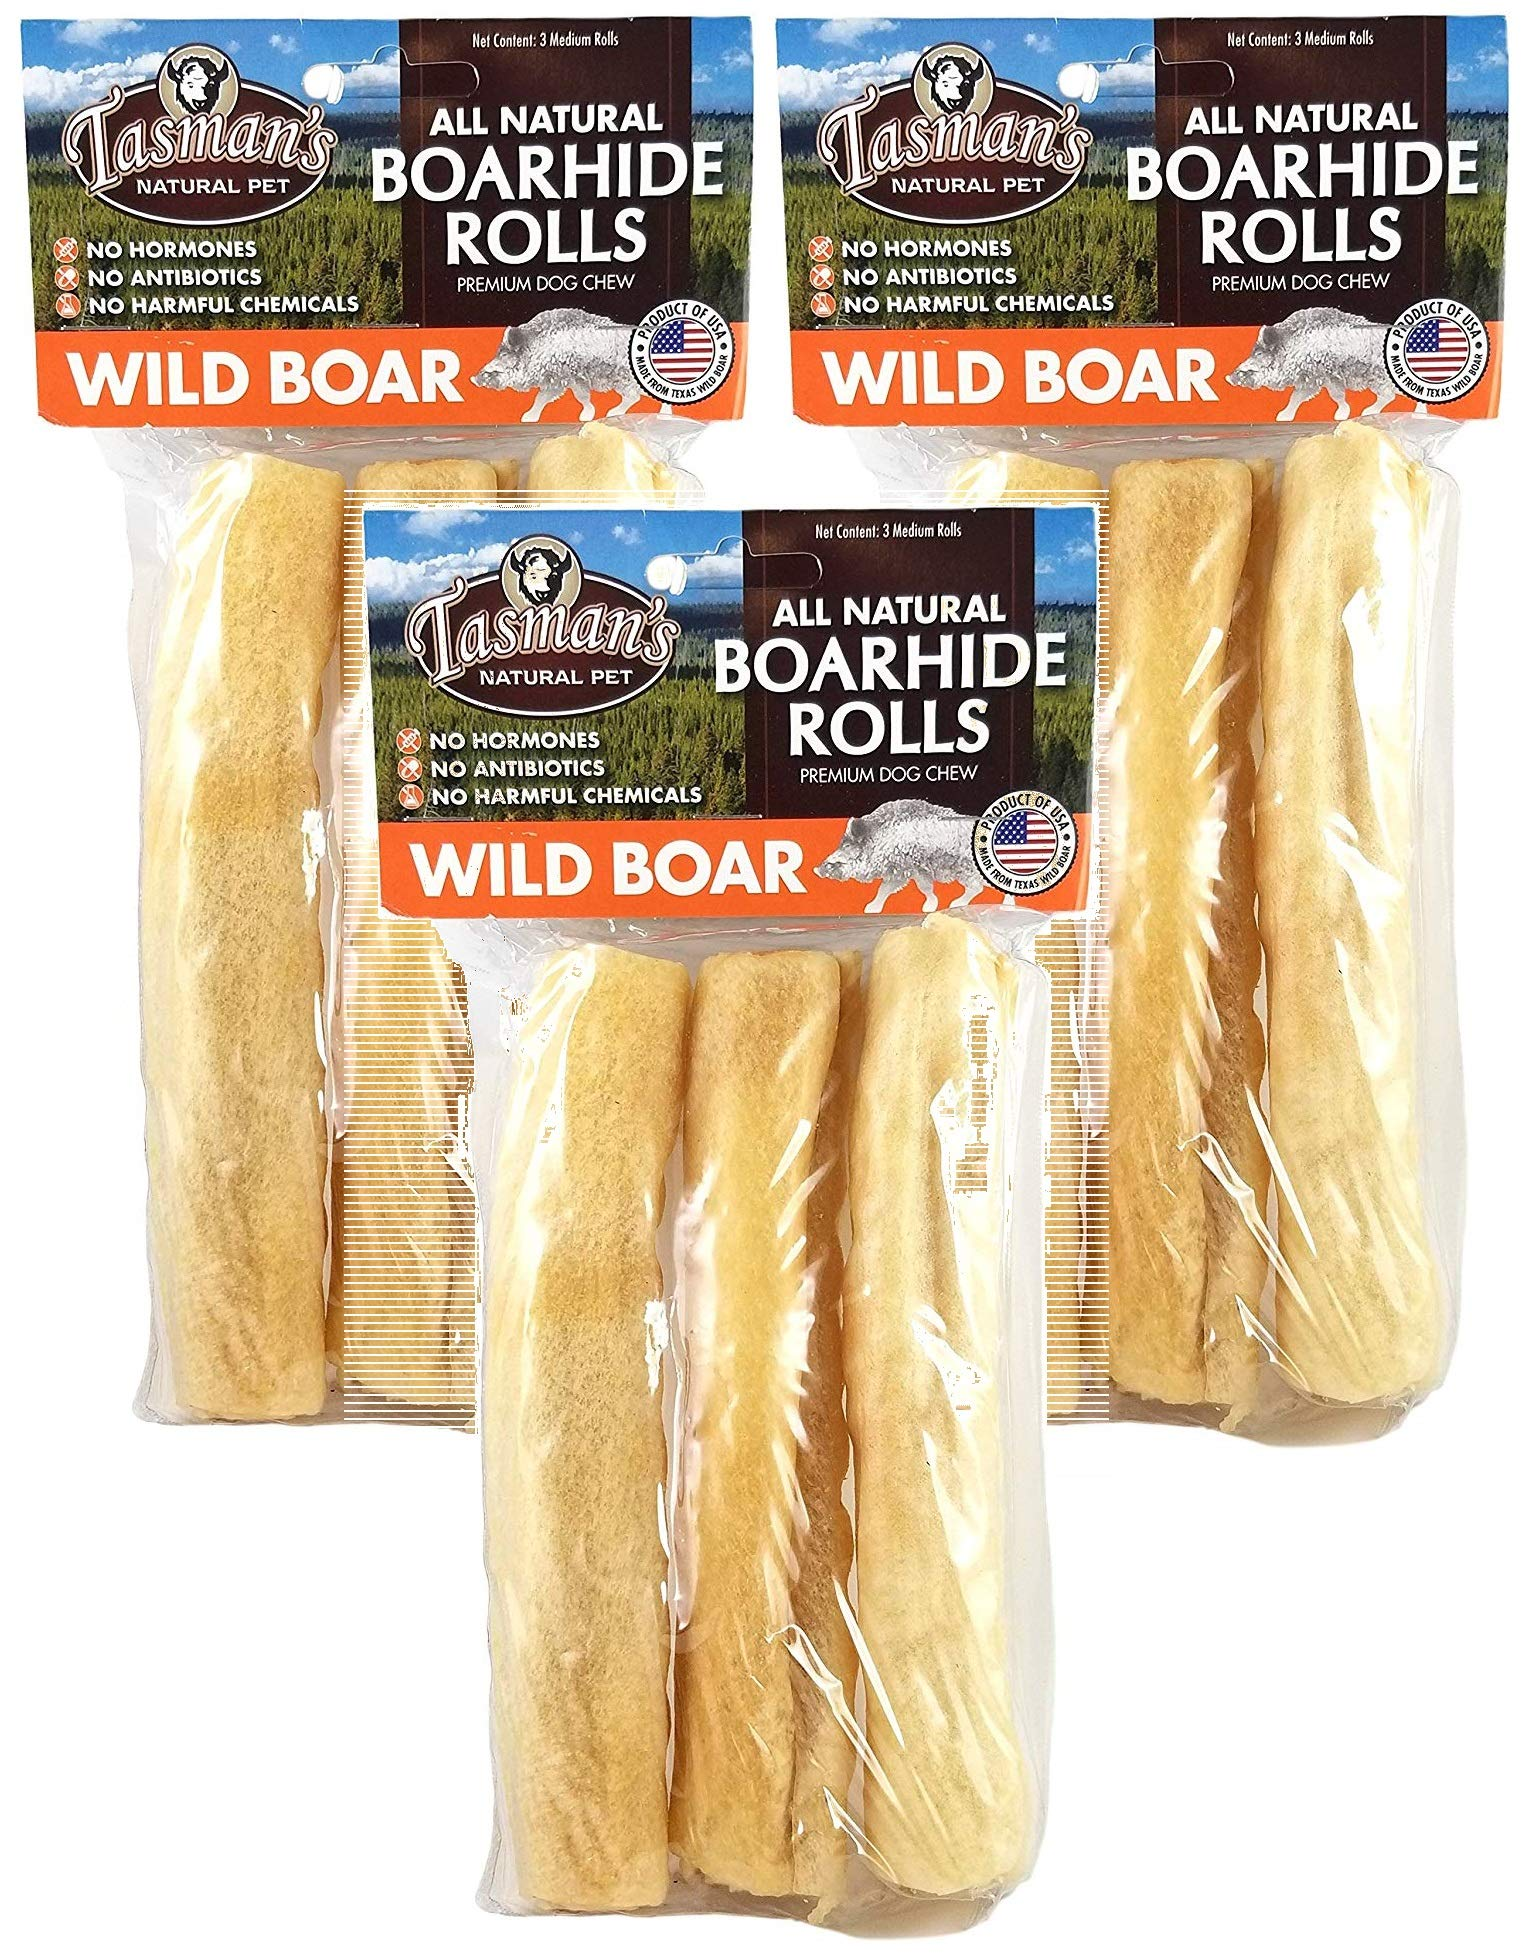 Tasman's Natural Pet 3 Pack Wild Boar Rawhide Rolls, 3 Medium Rolls per Pack (9 Pack)